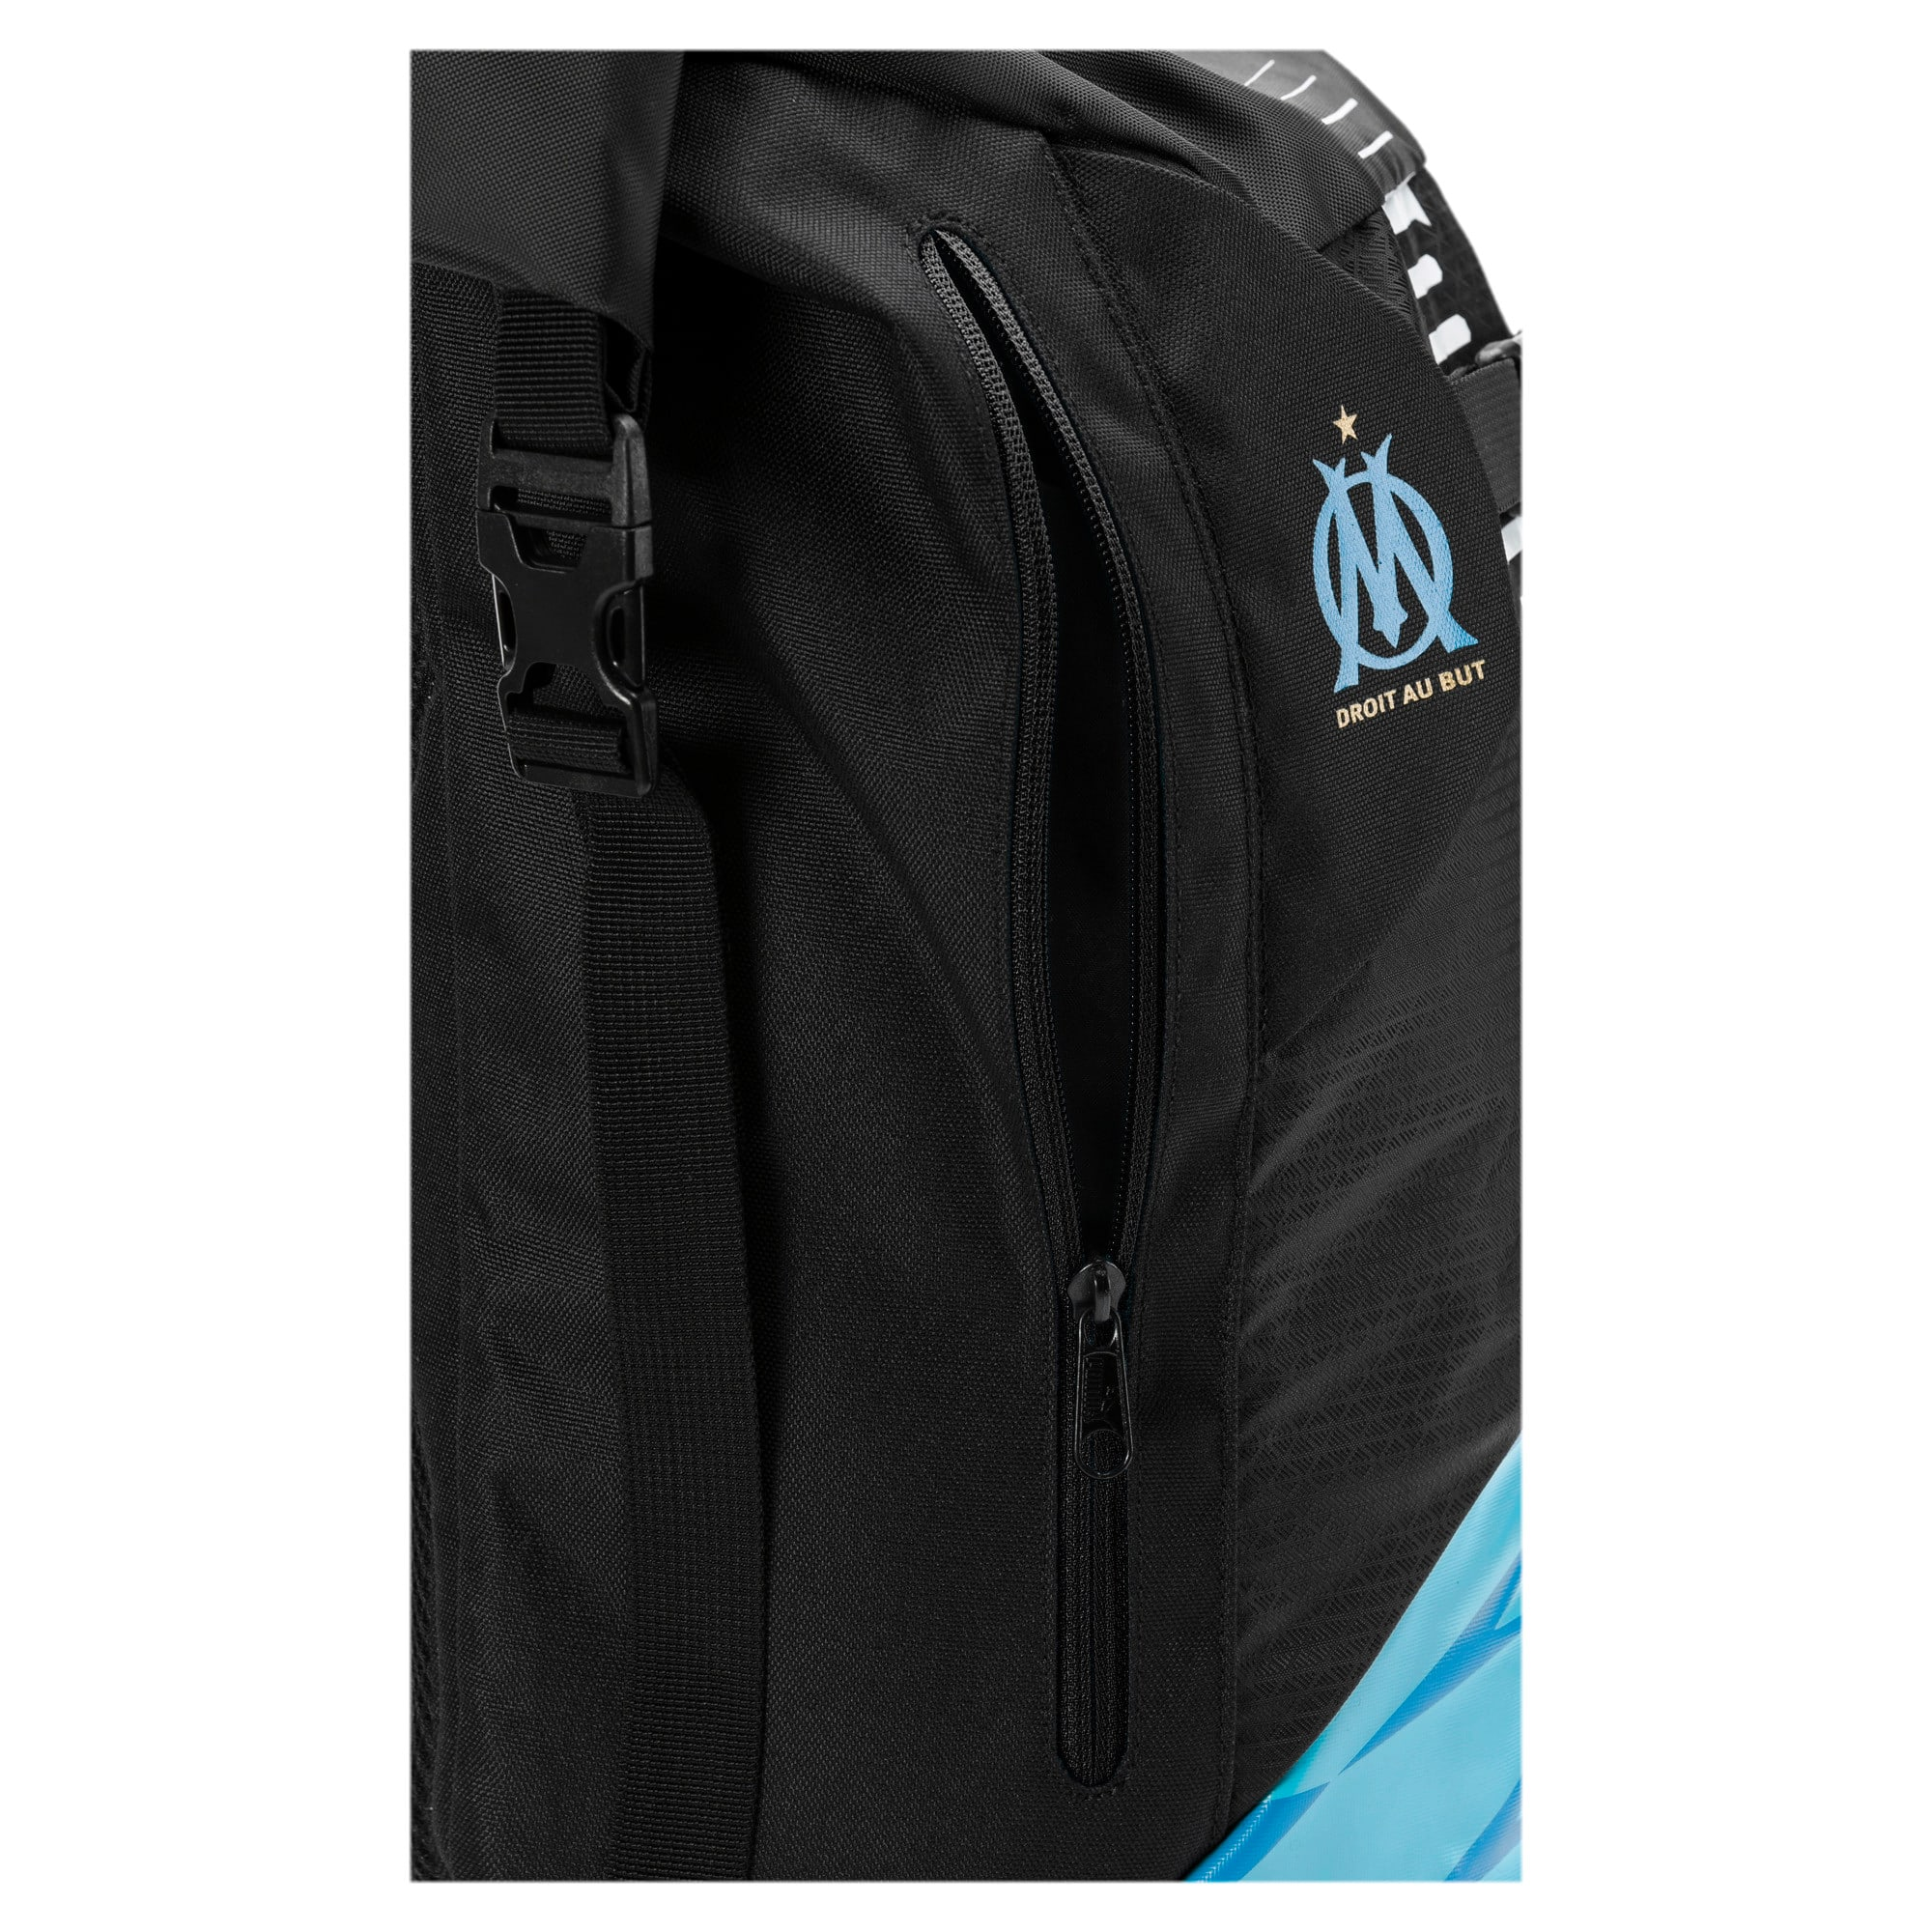 Thumbnail 3 of Olympique de Marseille Football Culture Rolltop Backpack, Puma Black-Bleu Azur-White, medium